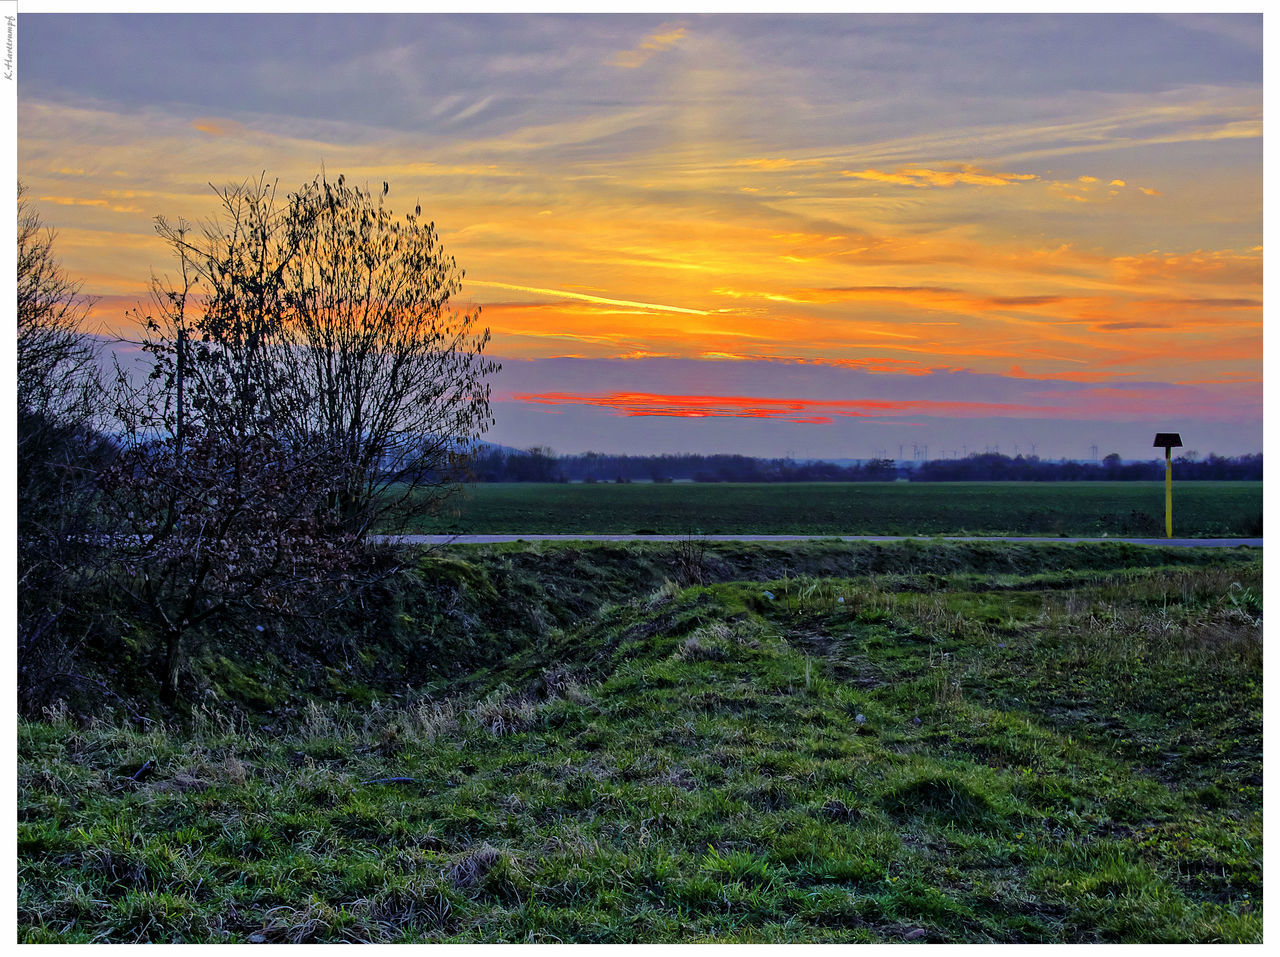 sunset, nature, grass, beauty in nature, tranquility, field, landscape, tranquil scene, scenics, growth, no people, sky, outdoors, agriculture, tree, rural scene, day